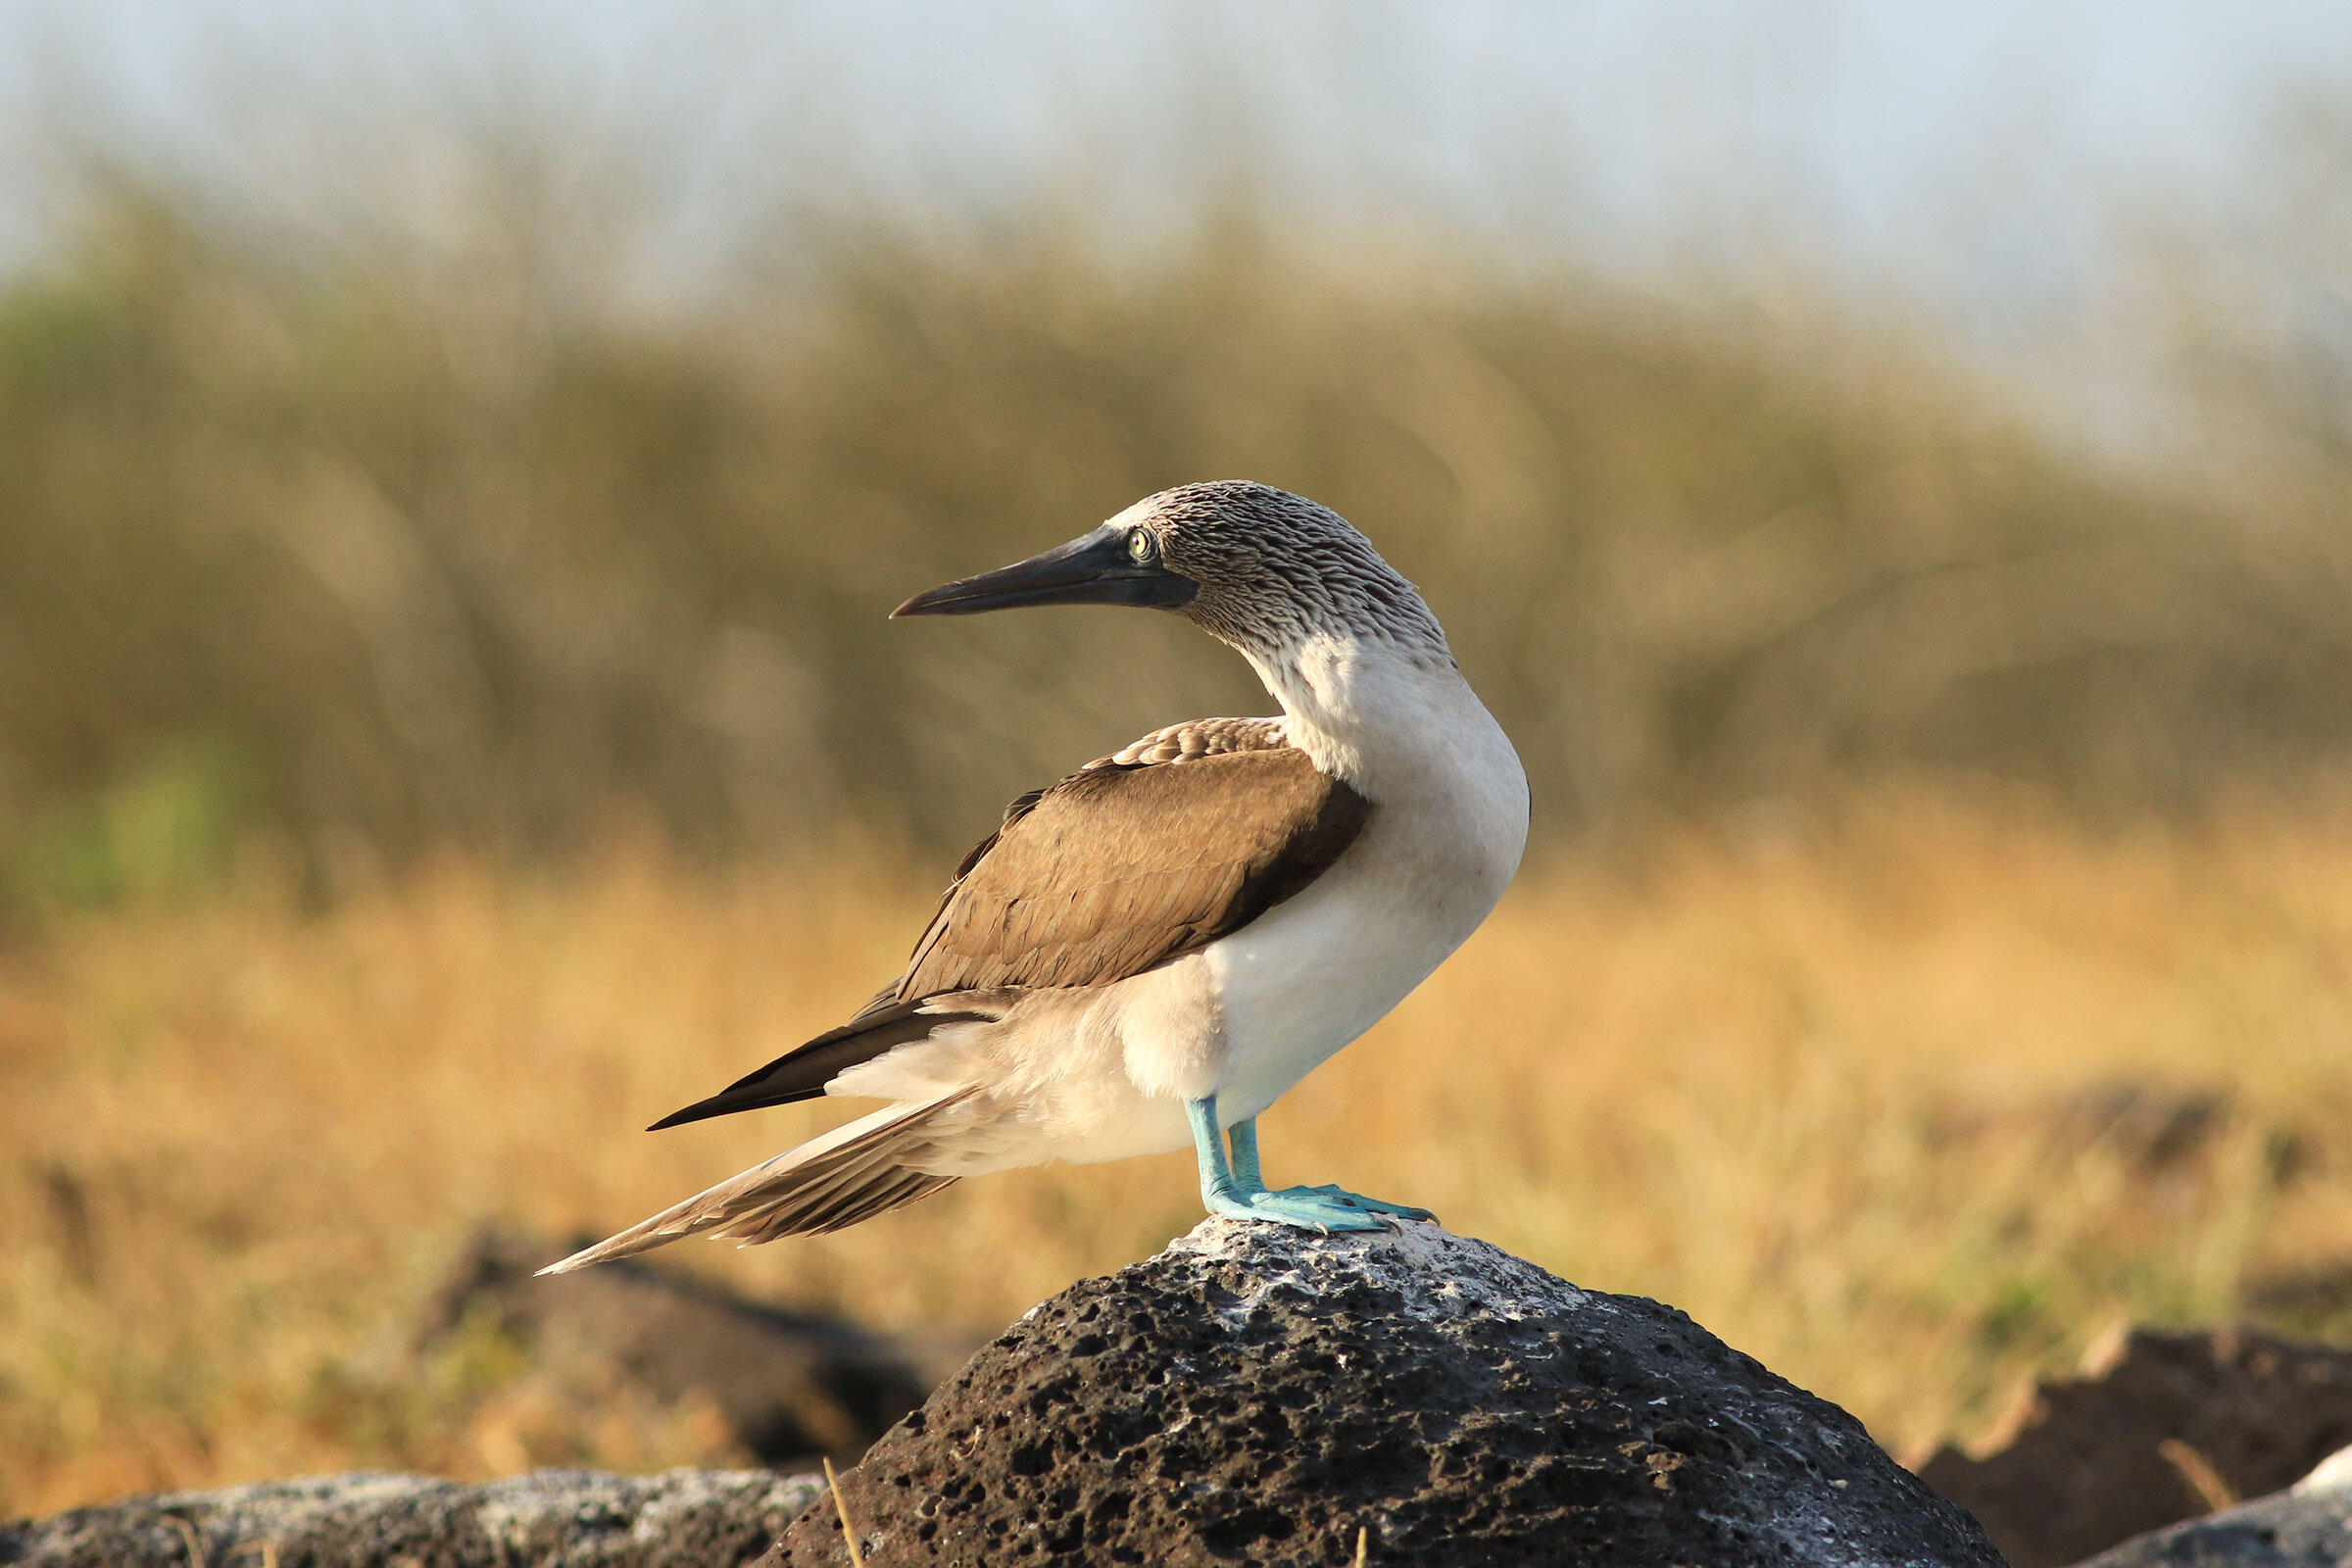 Blue-footed Booby sightings on land at Punta Cevallos are now a rare and exciting occurrence. Jenny Howard